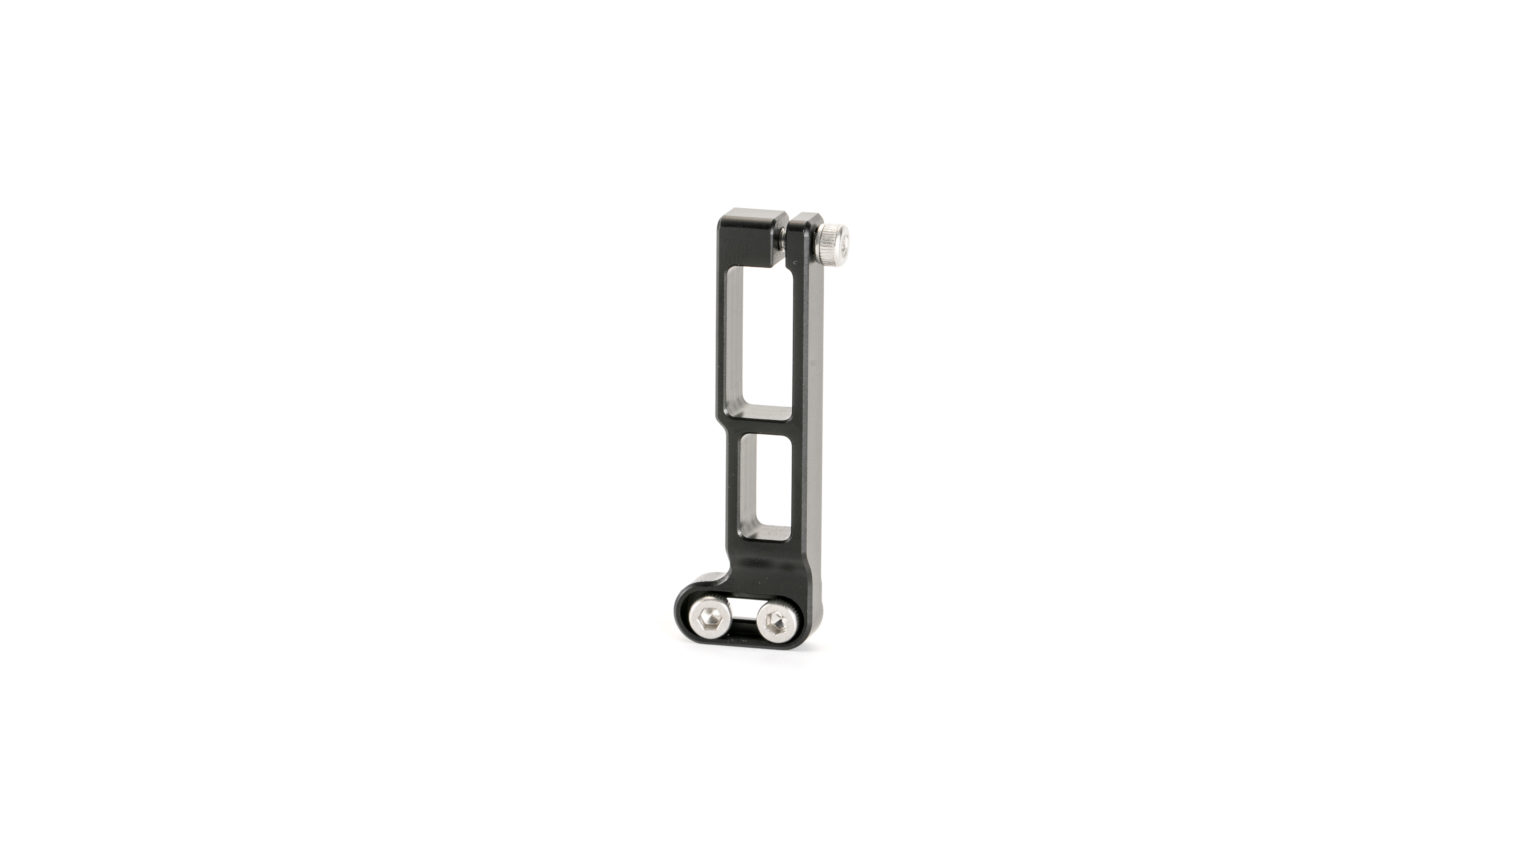 HDMI Cable Clamp Attachment for Sony a1 Full Cage